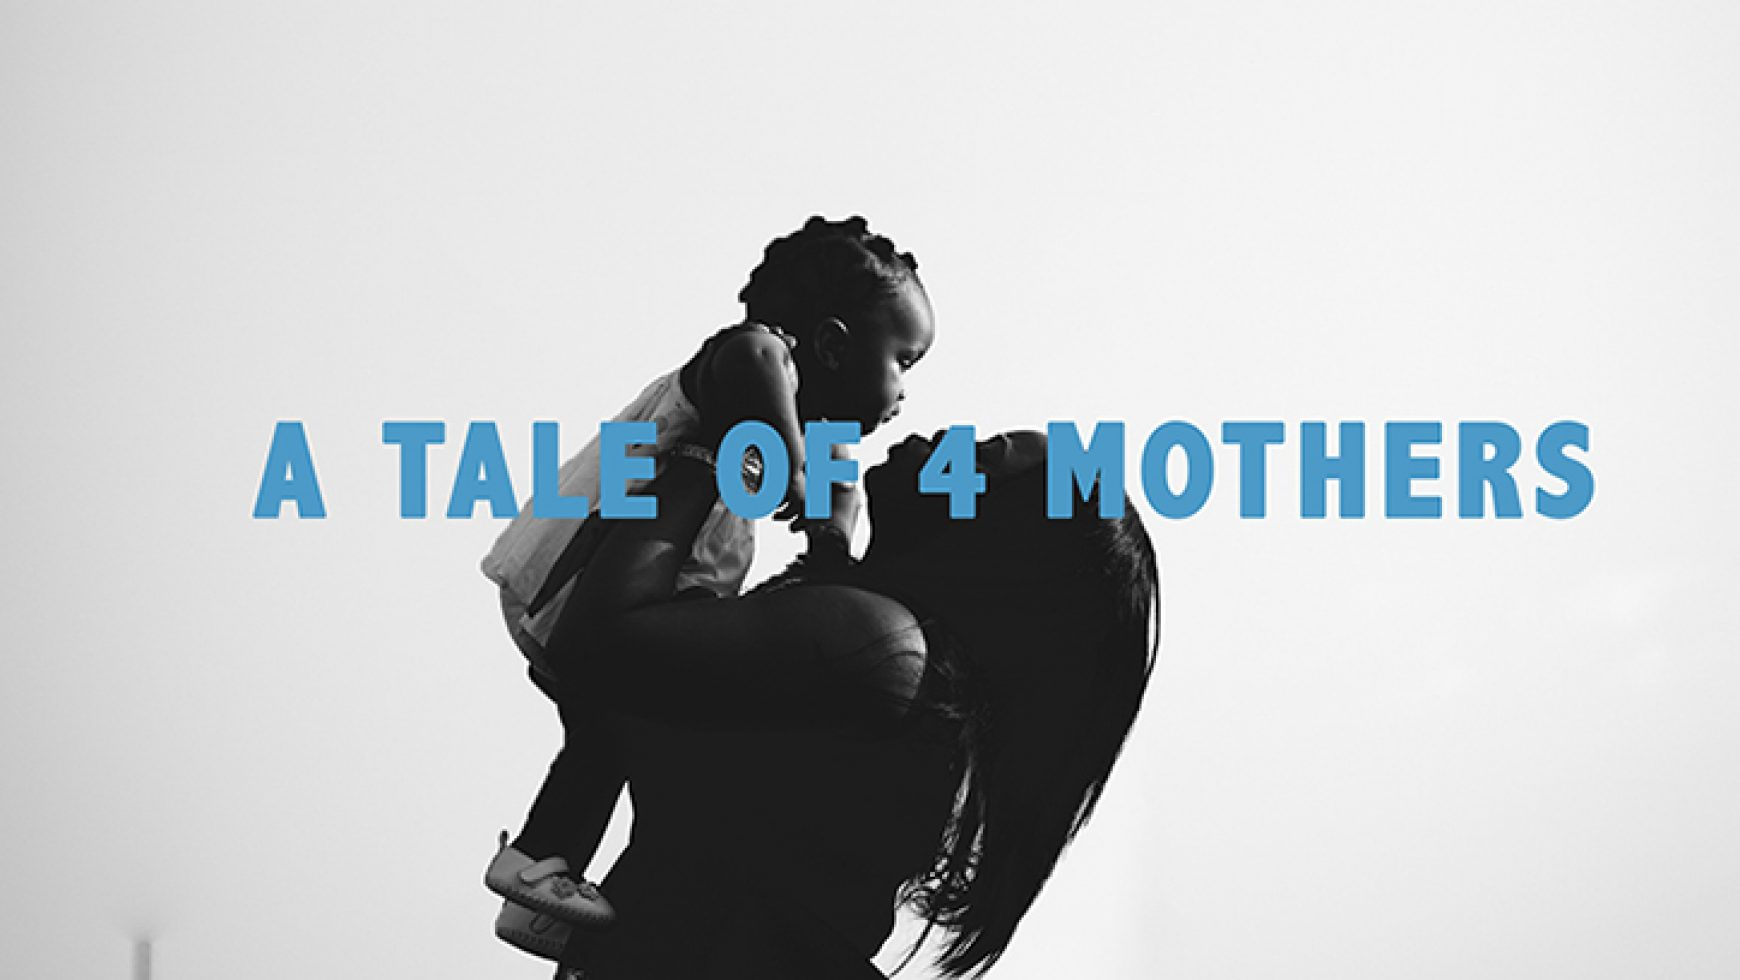 A Tale of 4 Mothers